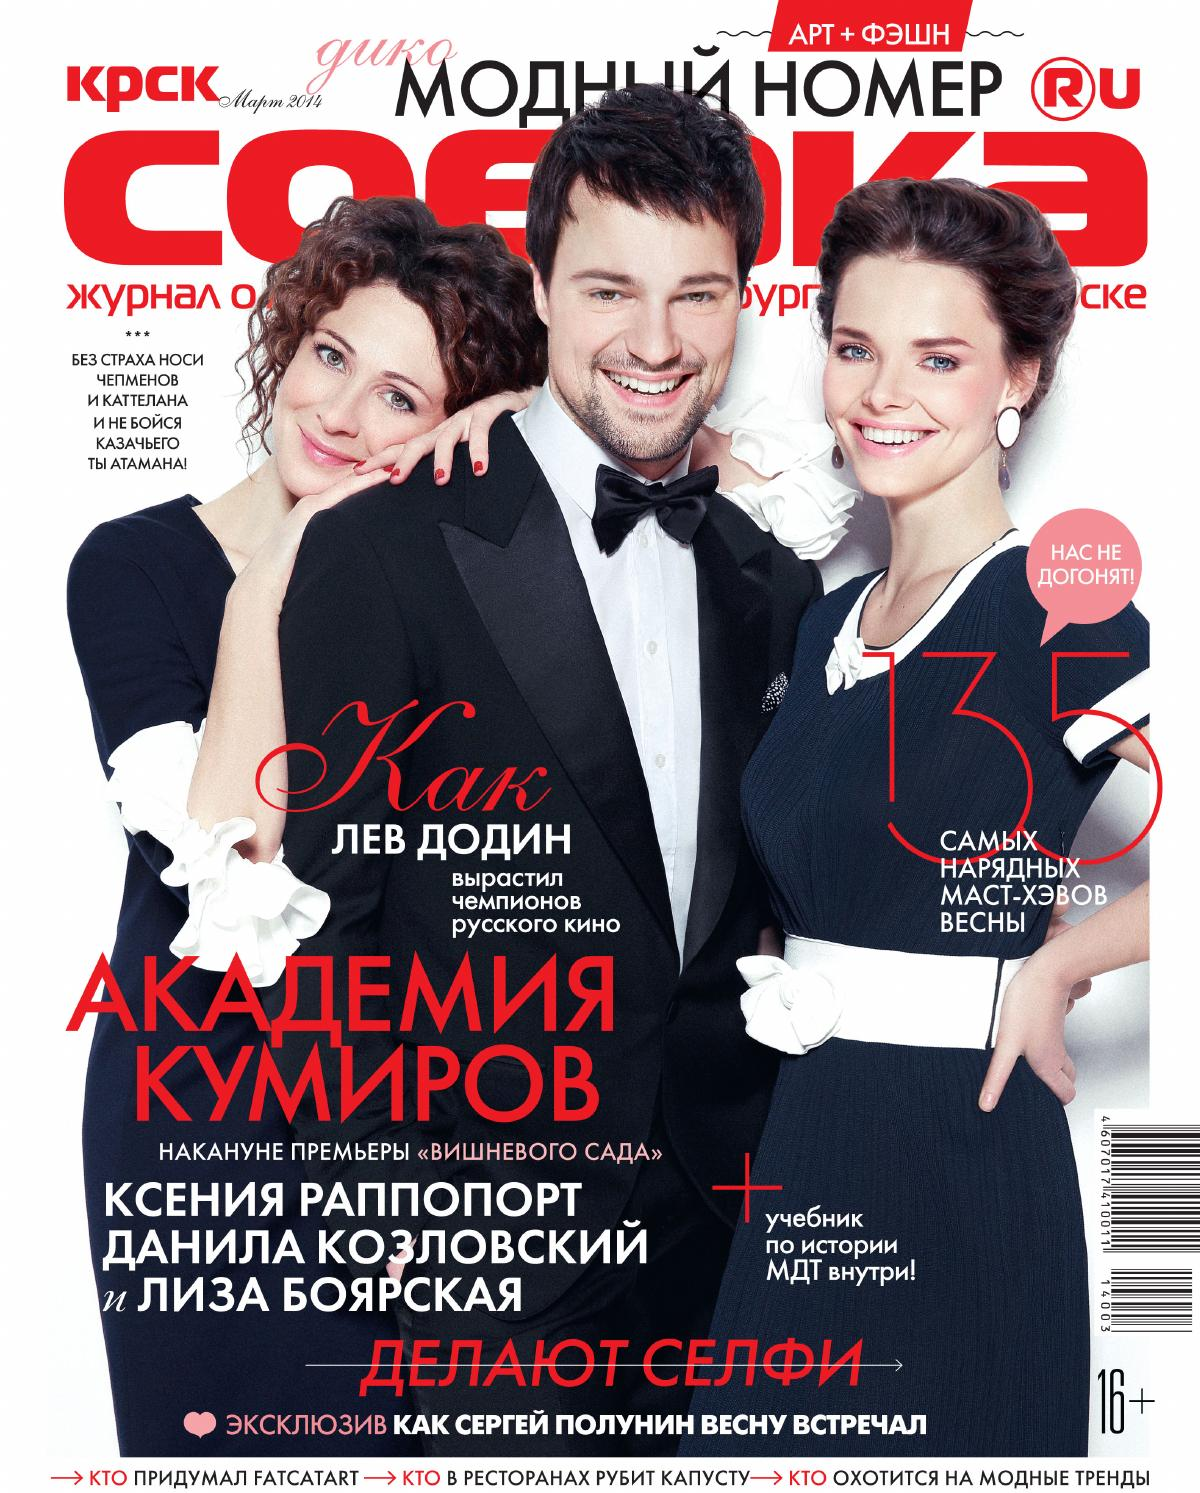 8804c235 Крск Собака ru март 2014 by Alex Zhema - issuu